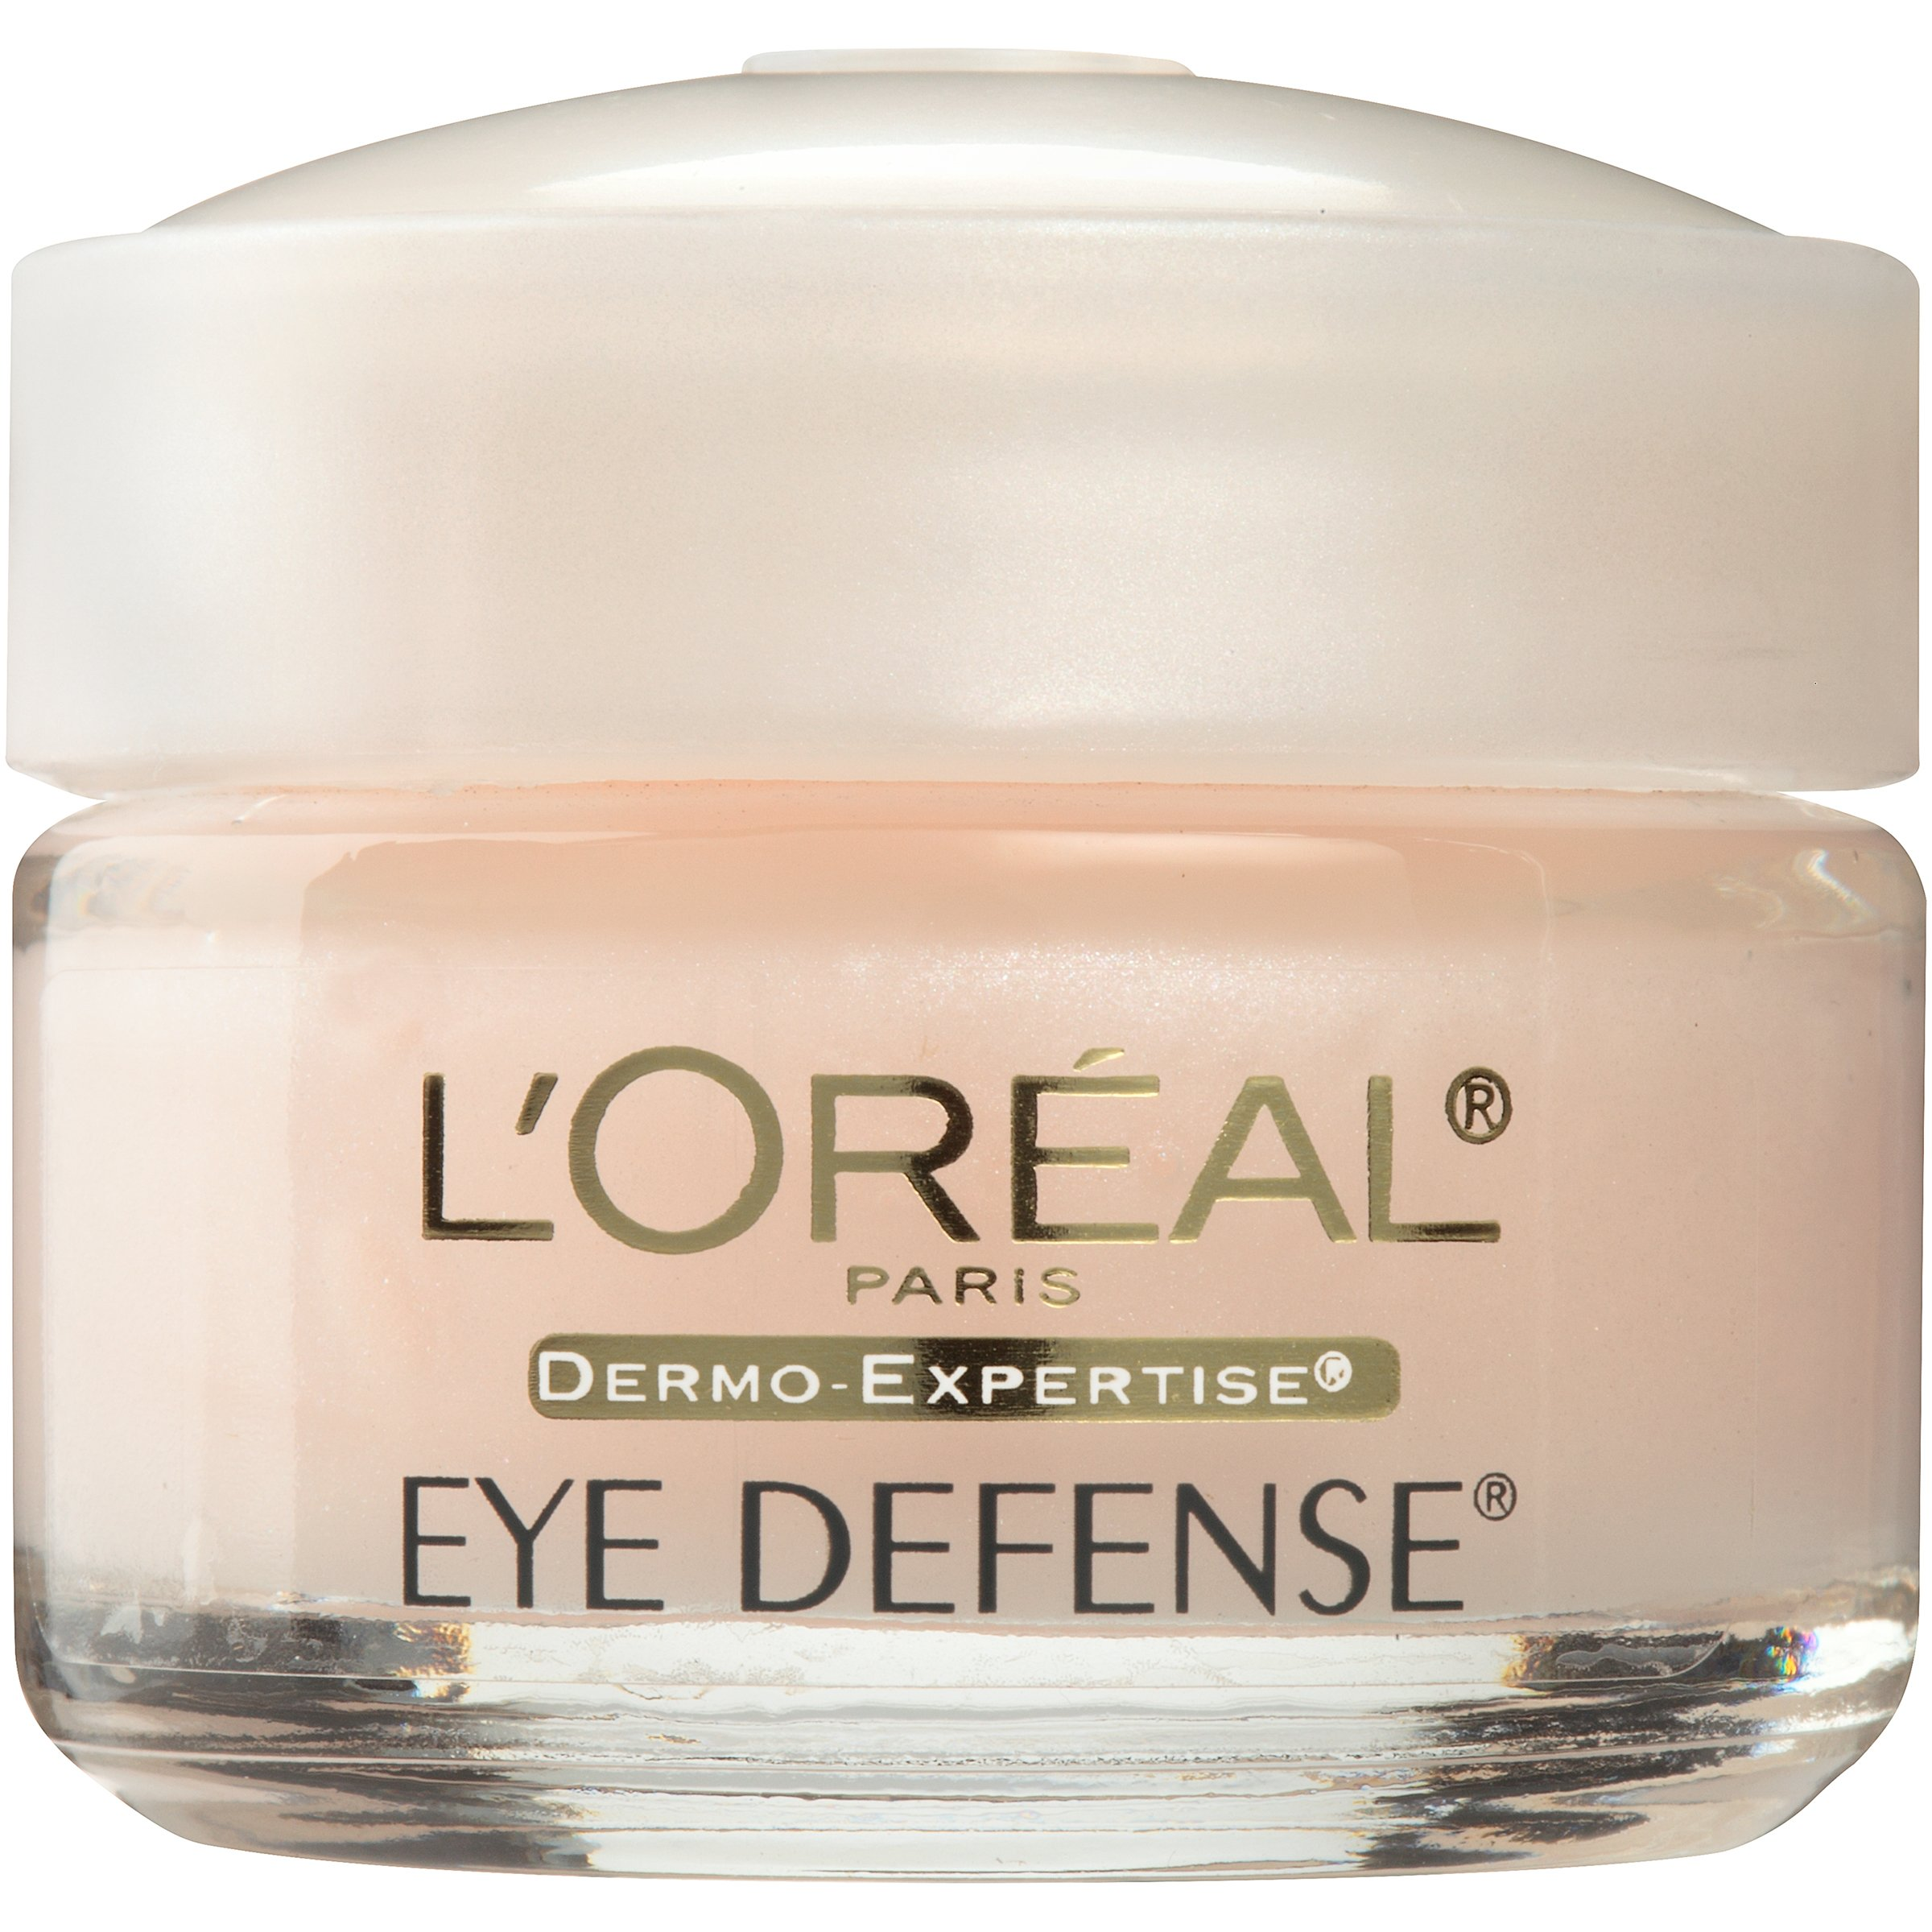 L'Oreal Paris Skincare Dermo-Expertise Eye Defense Eye Cream with Caffeine and Hyaluronic Acid For All Skin Types 0.5 oz. by L'Oreal Paris